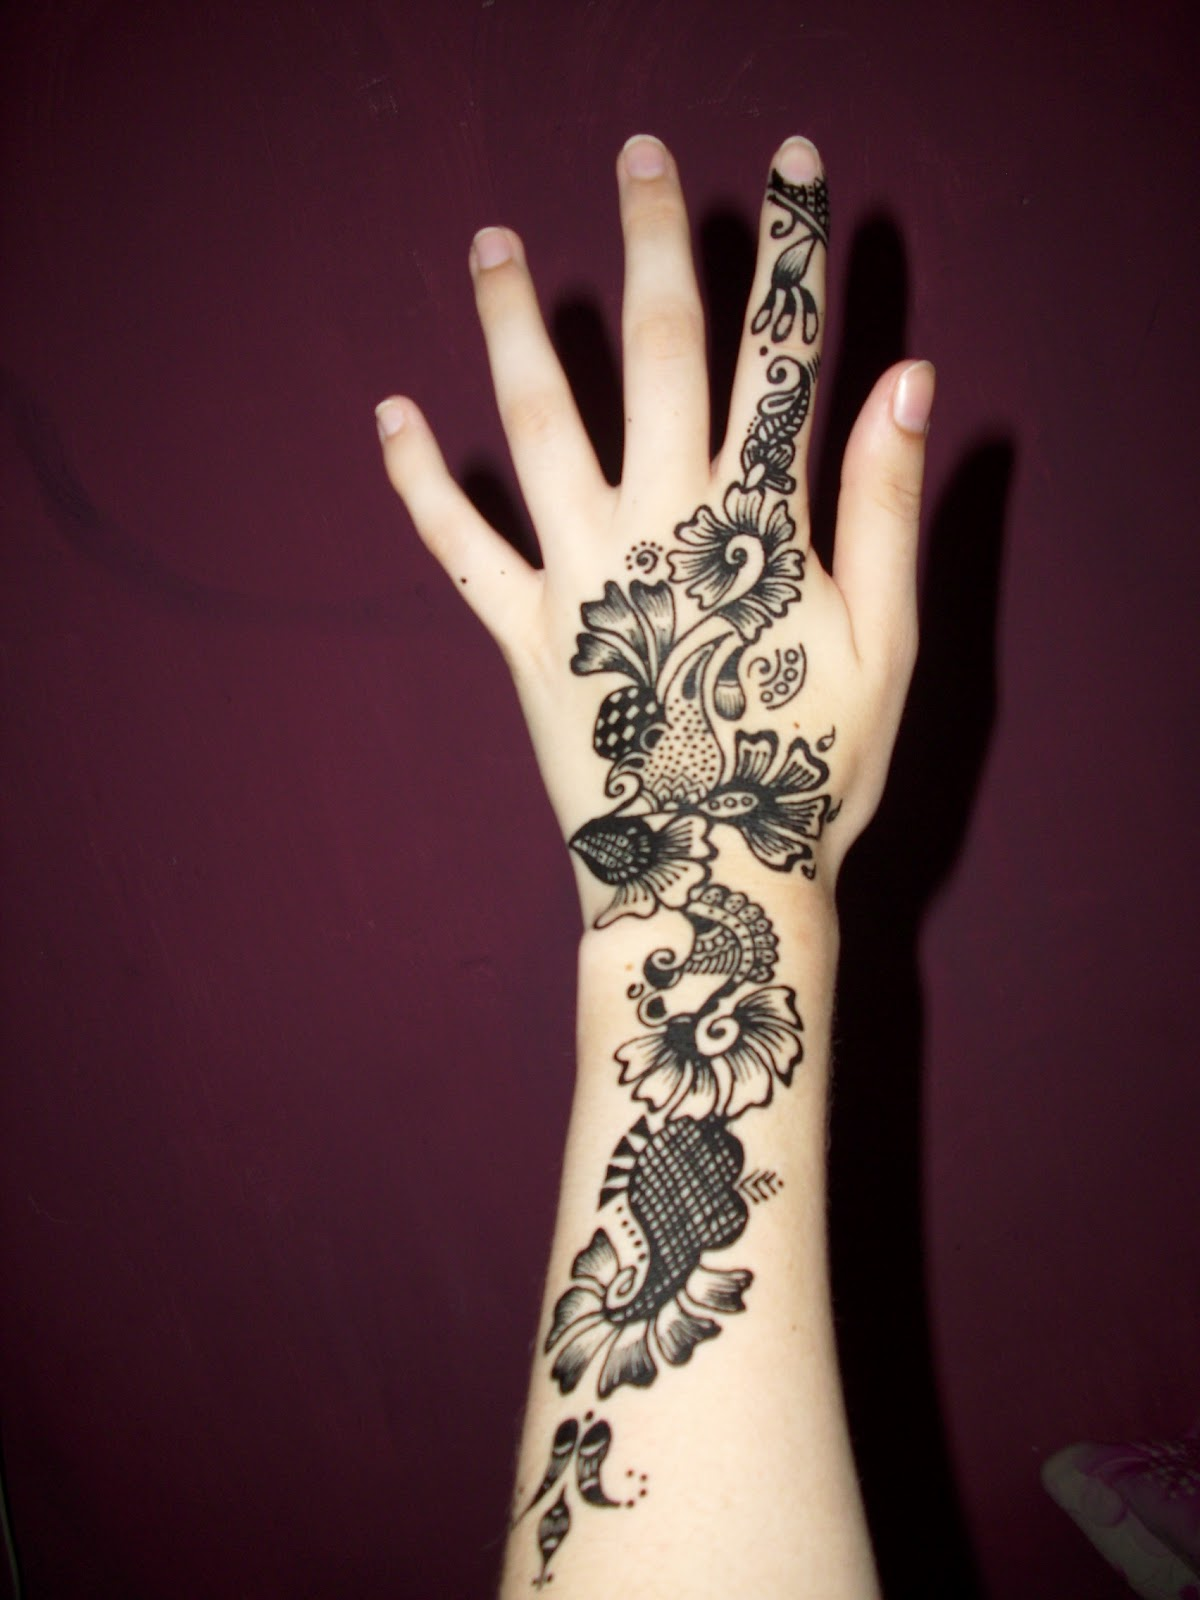 Hand tattoos for girls pictures 50 Awesome Star Tattoos Ideas For Men And Women